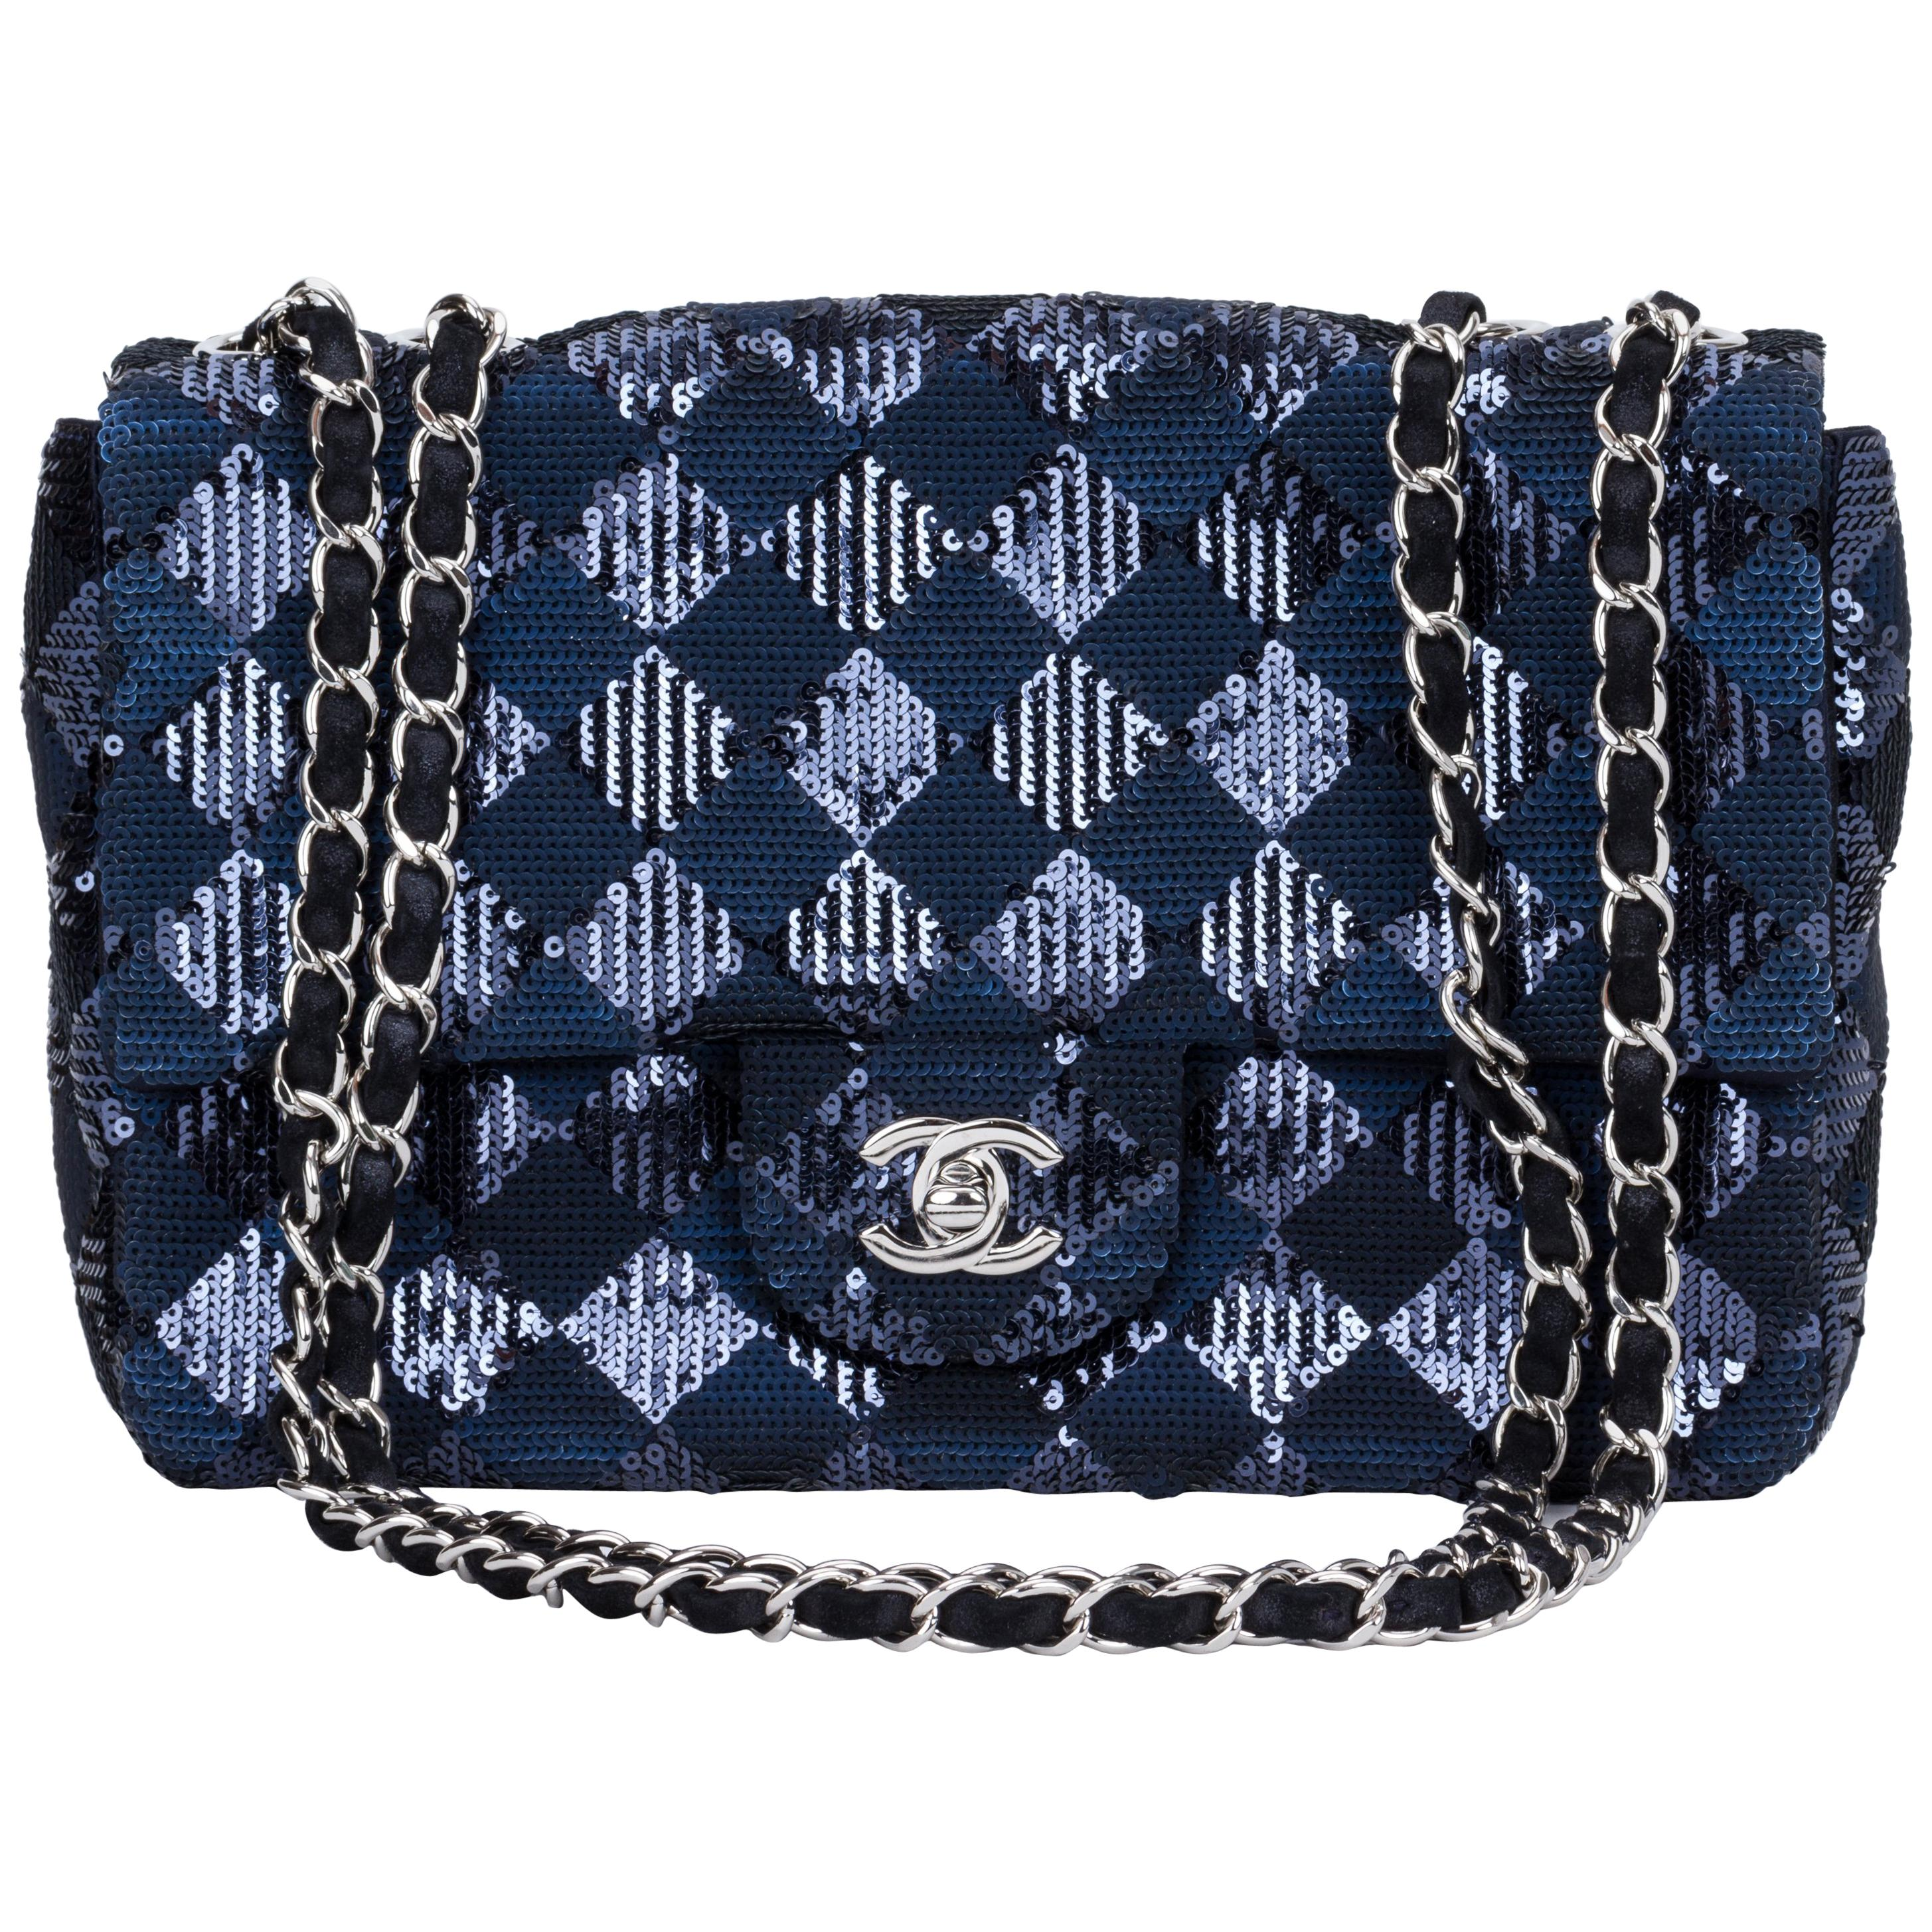 Chanel Navy and Black Sequins Evening Flap Bag